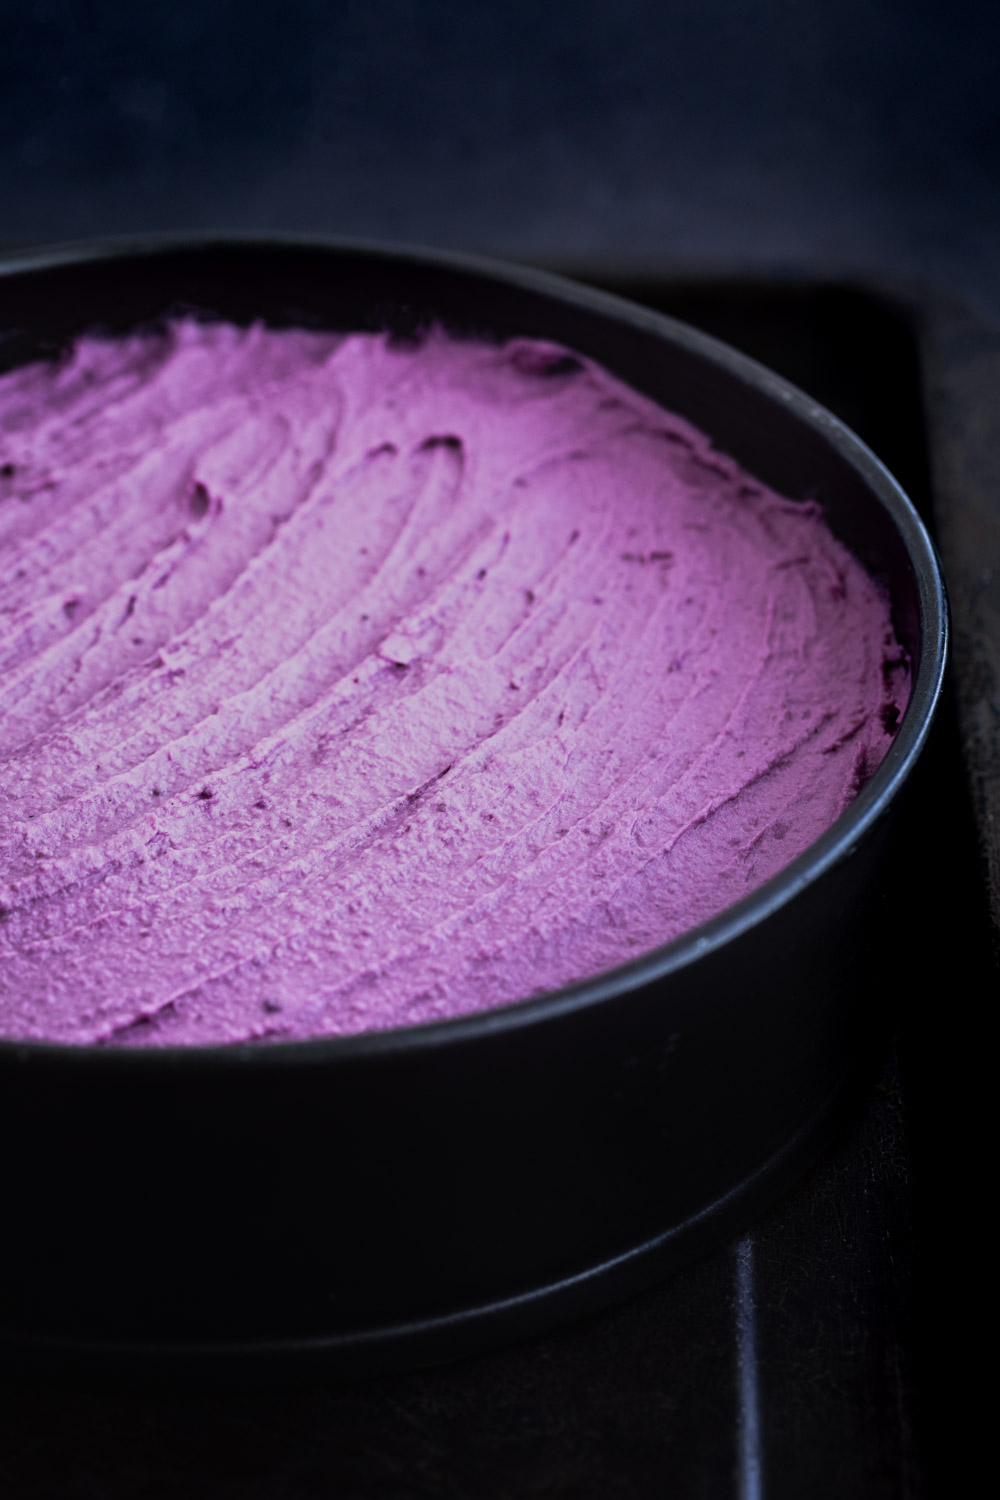 Side angle shot of the purple sweet potato cheesecake batter spread out on the spring foam pan.